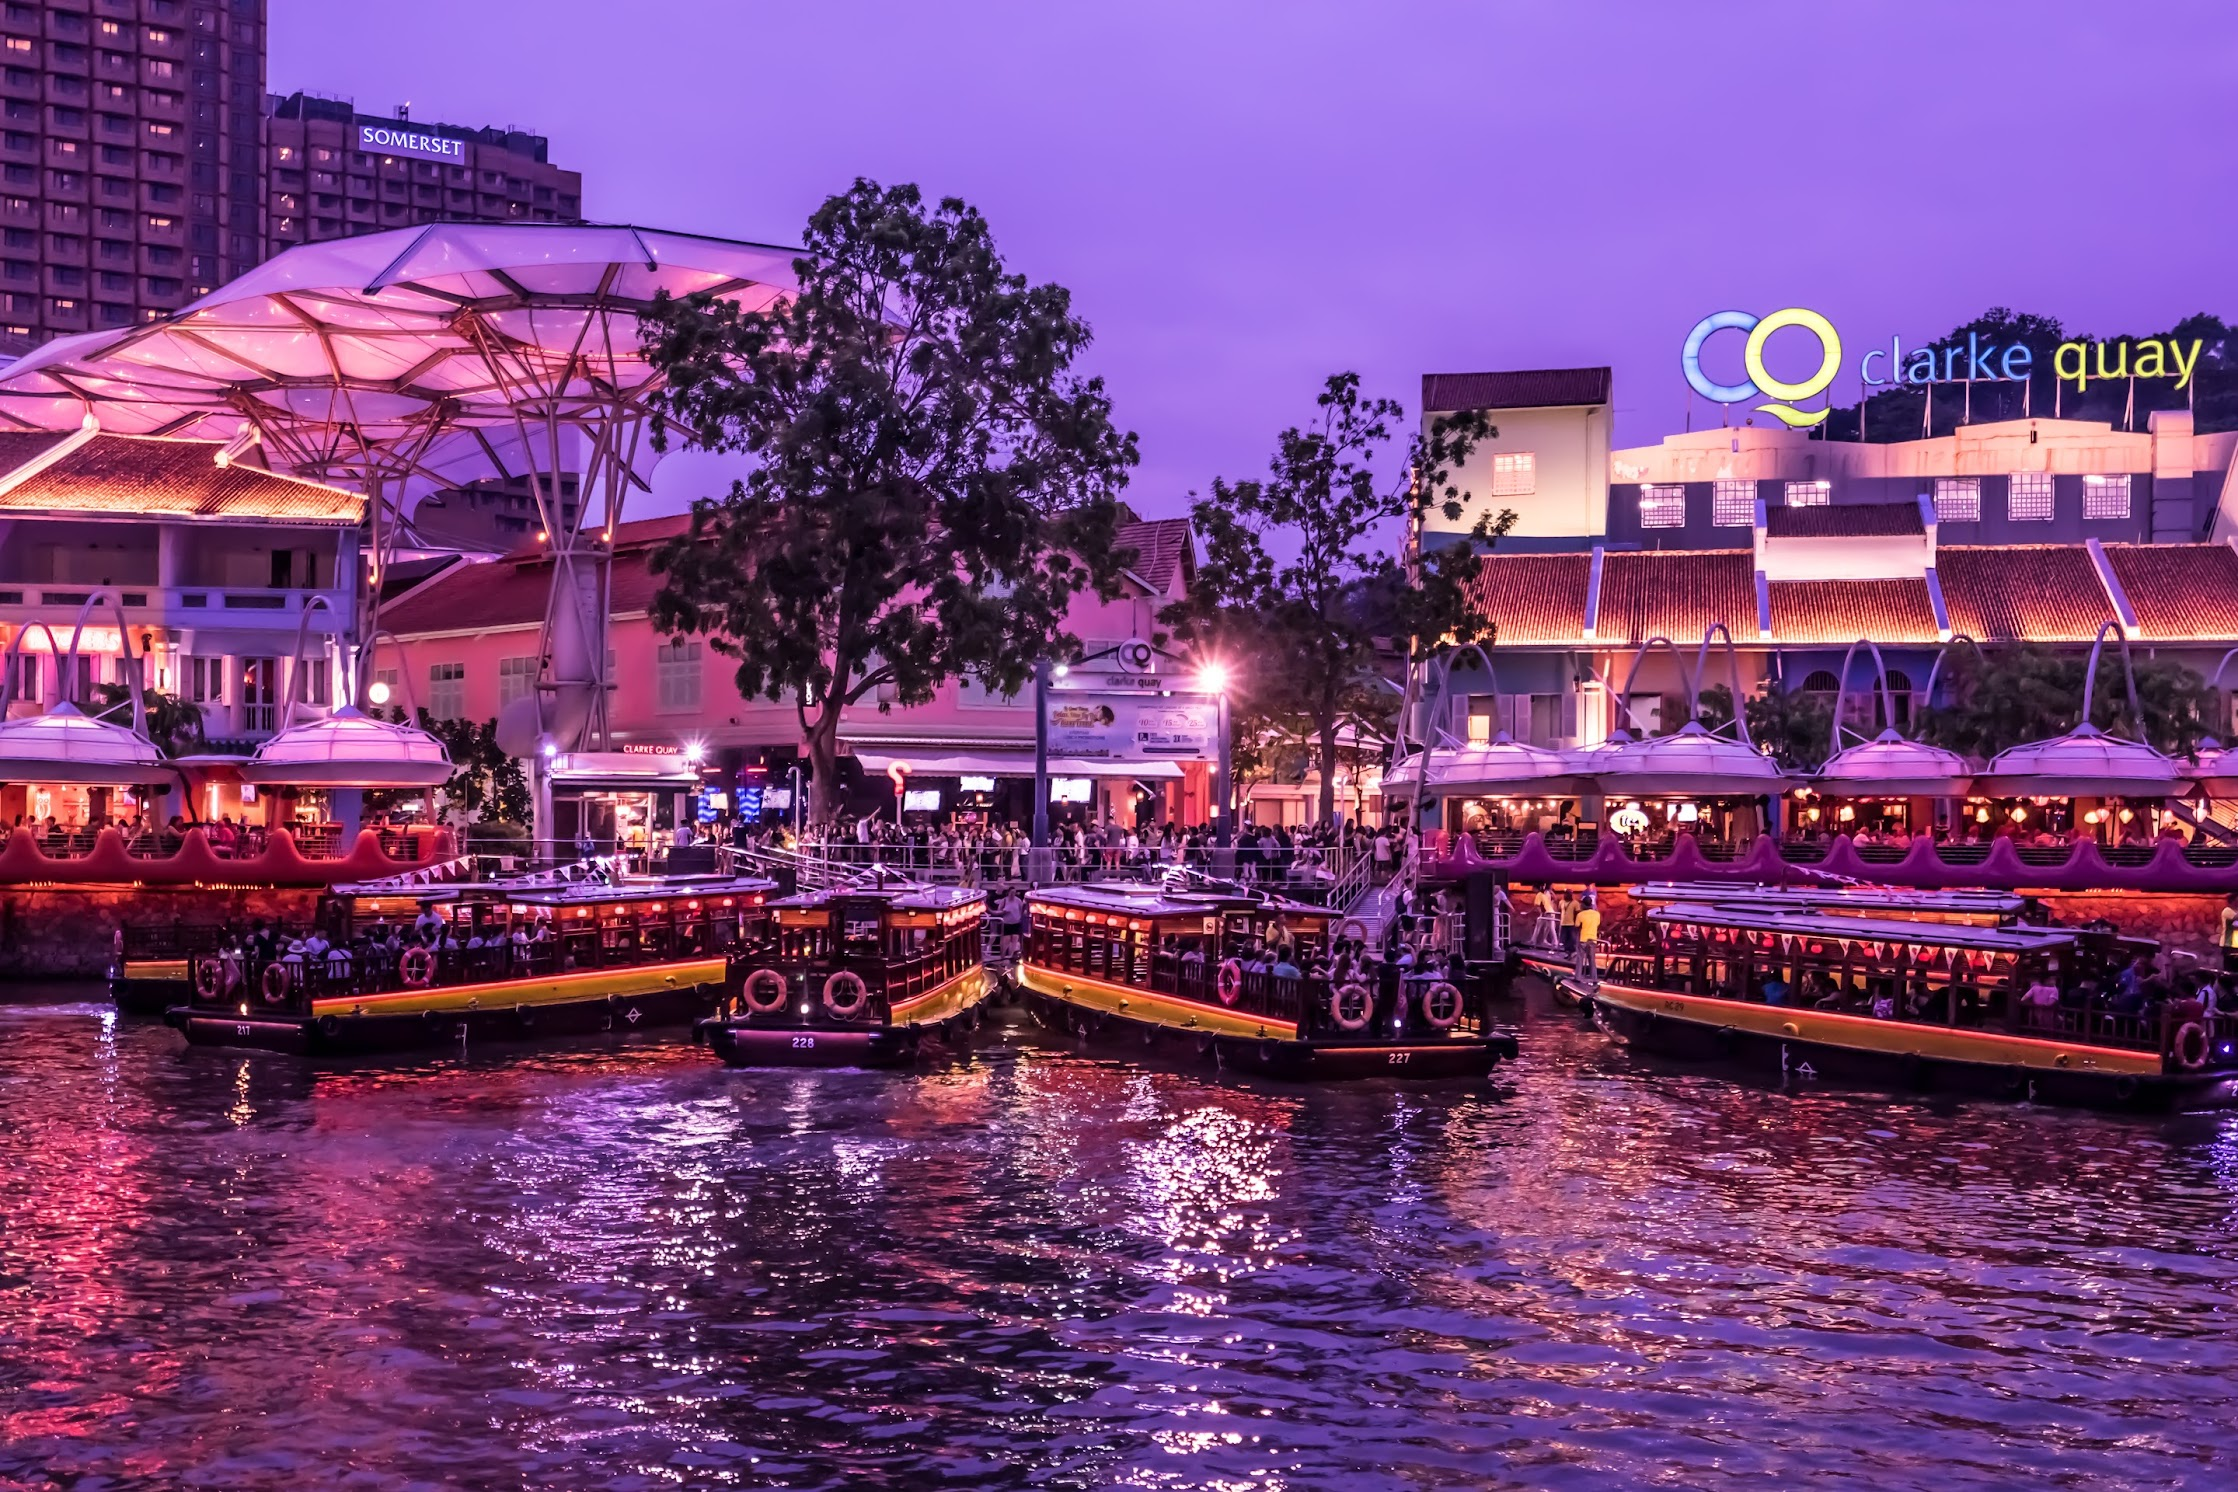 Singapore Clarke Quay evening view1